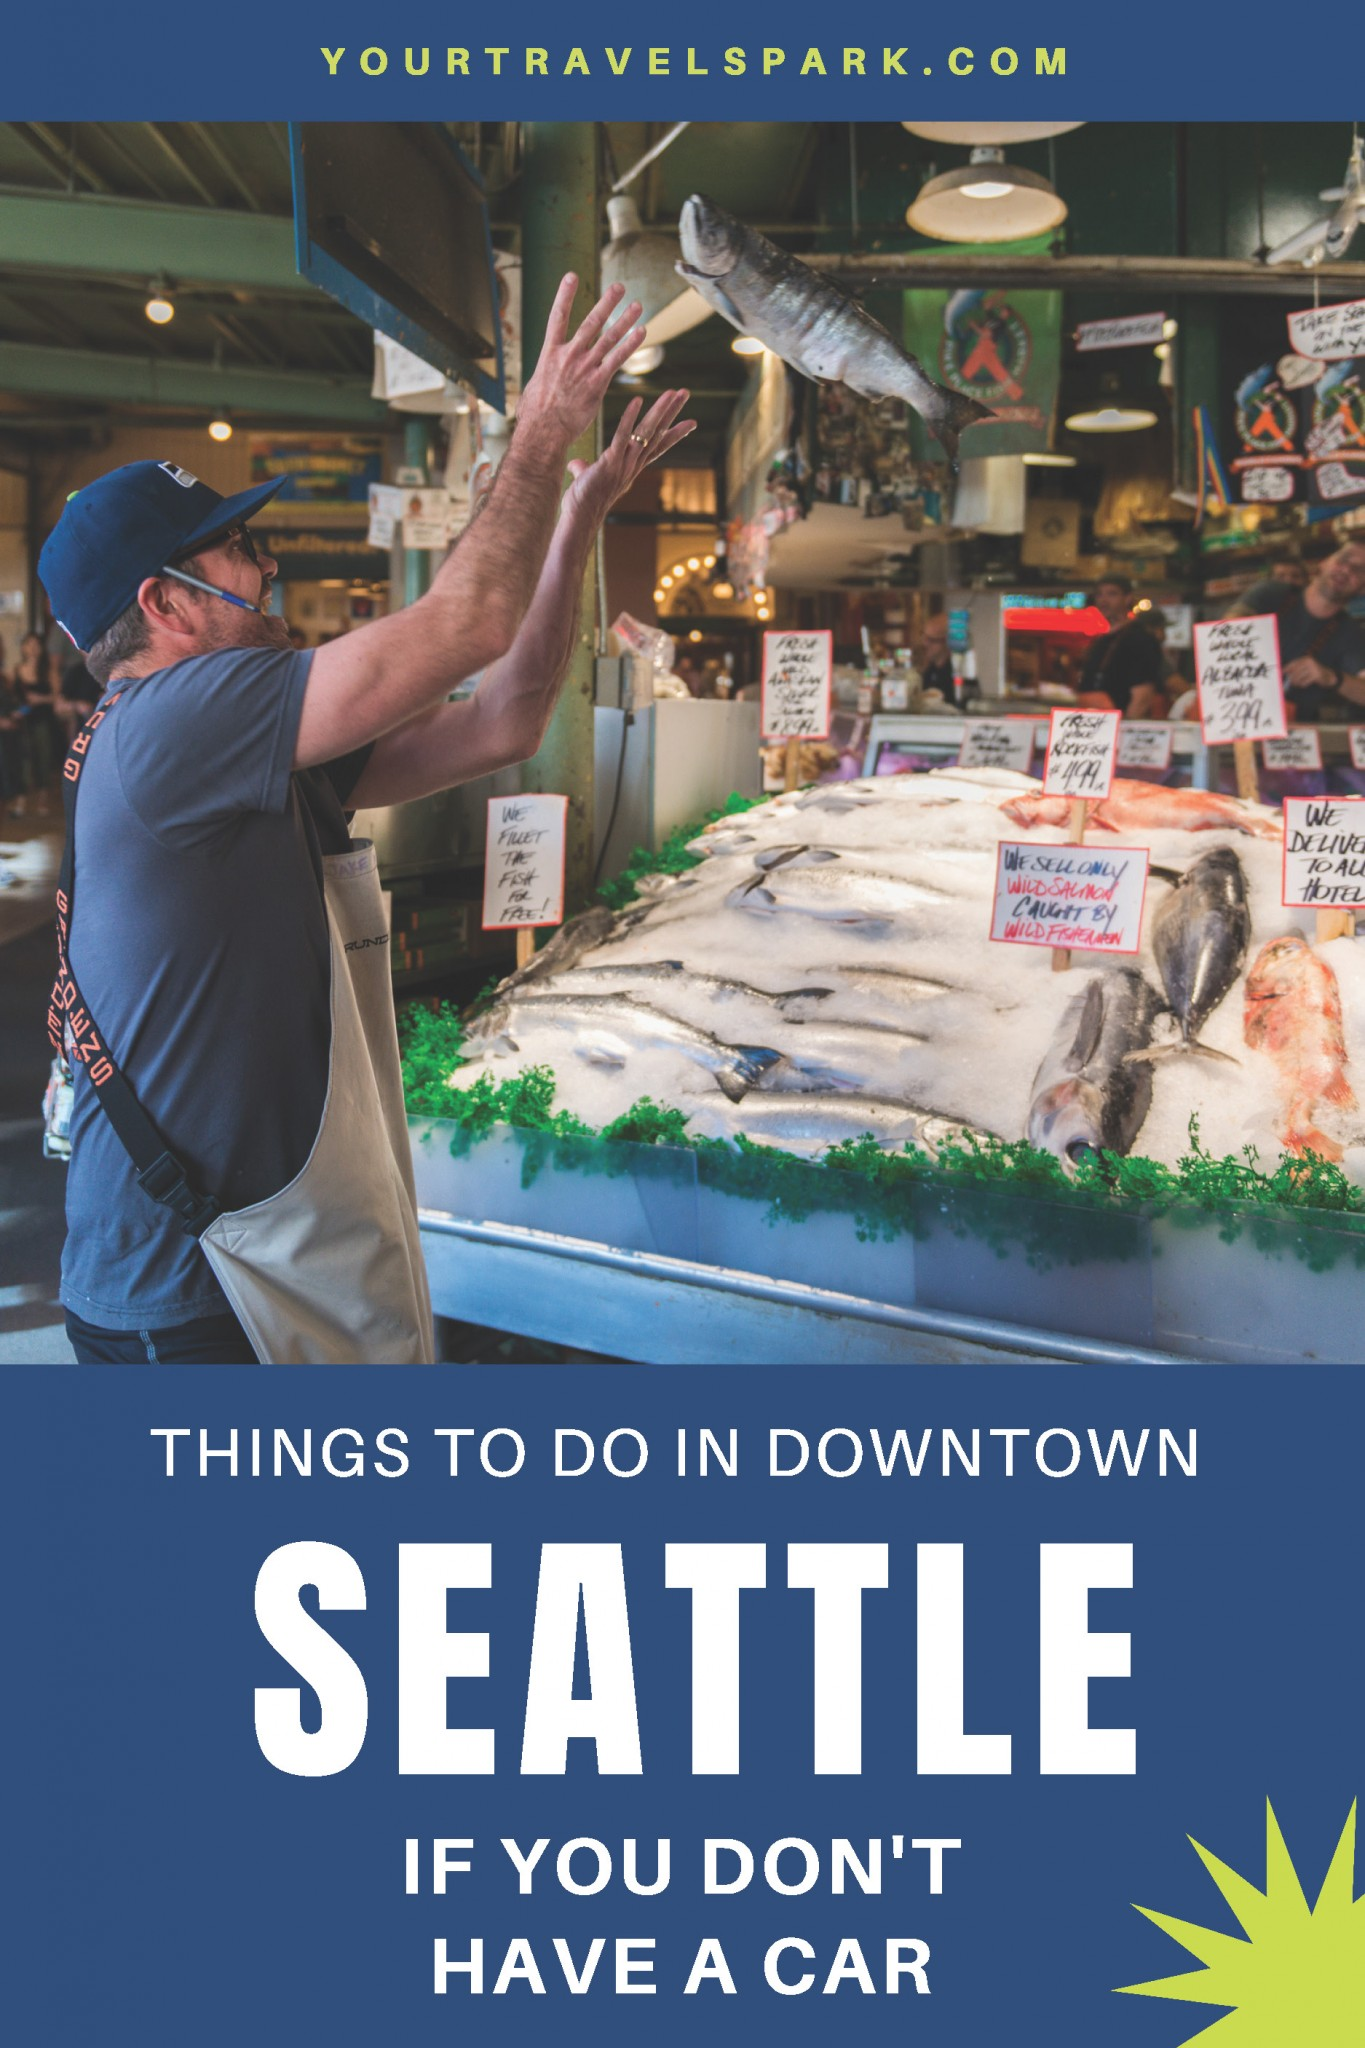 Seattle, Washington is a beautiful and fun destination. If you are in the city, here are our favorite things to do in downtown Seattle without a car. #seattle #downtownseattle #seattlewa #seattlewashington #washington #pikeplacemarket #pikeplace #pikesplace #unionbay